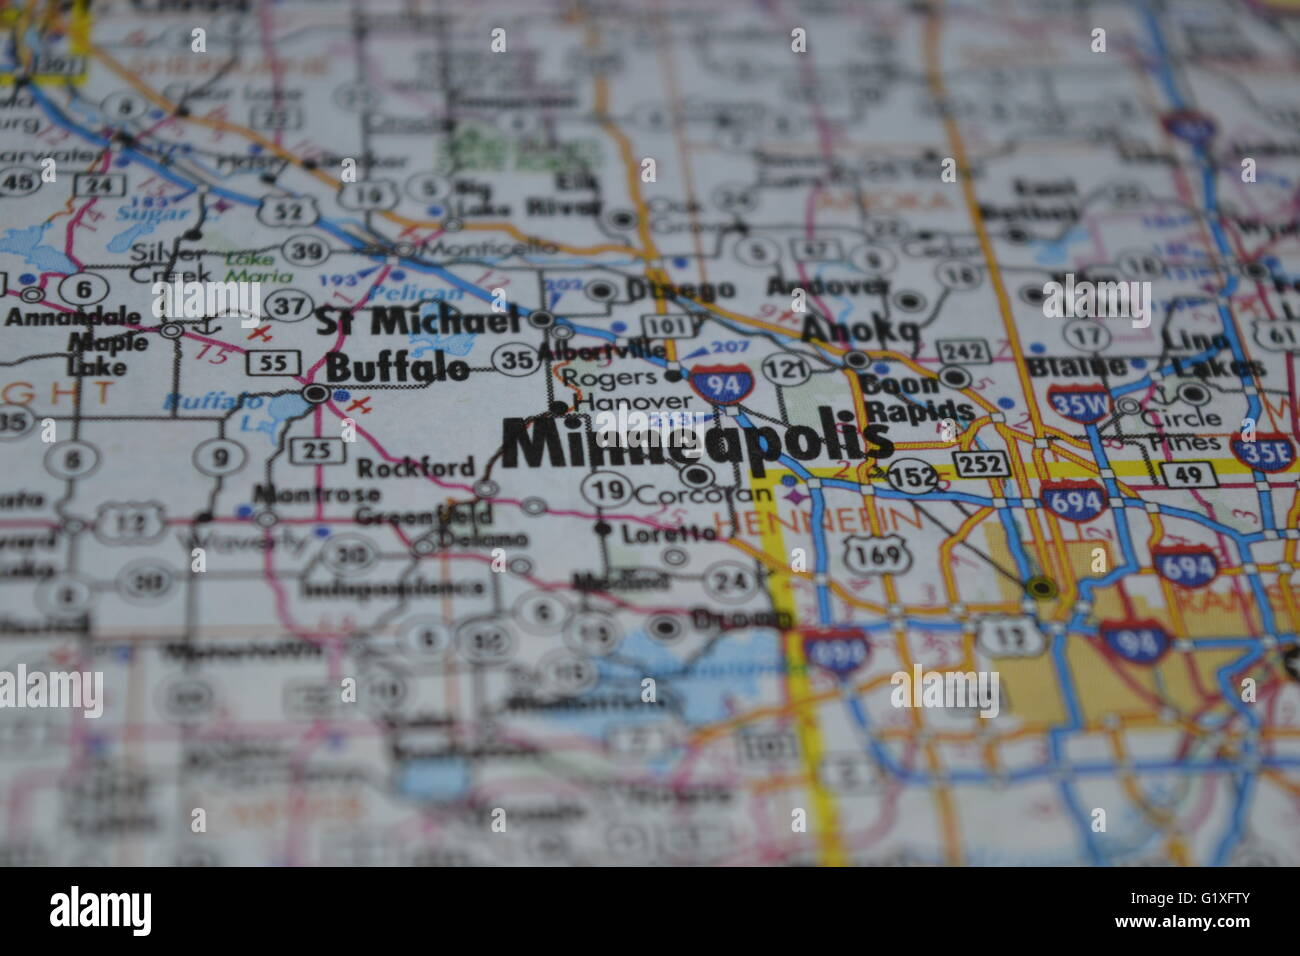 Map Of Minneapolis Stock Photos   Map Of Minneapolis Stock Images     Minneapolis Map   Stock Image